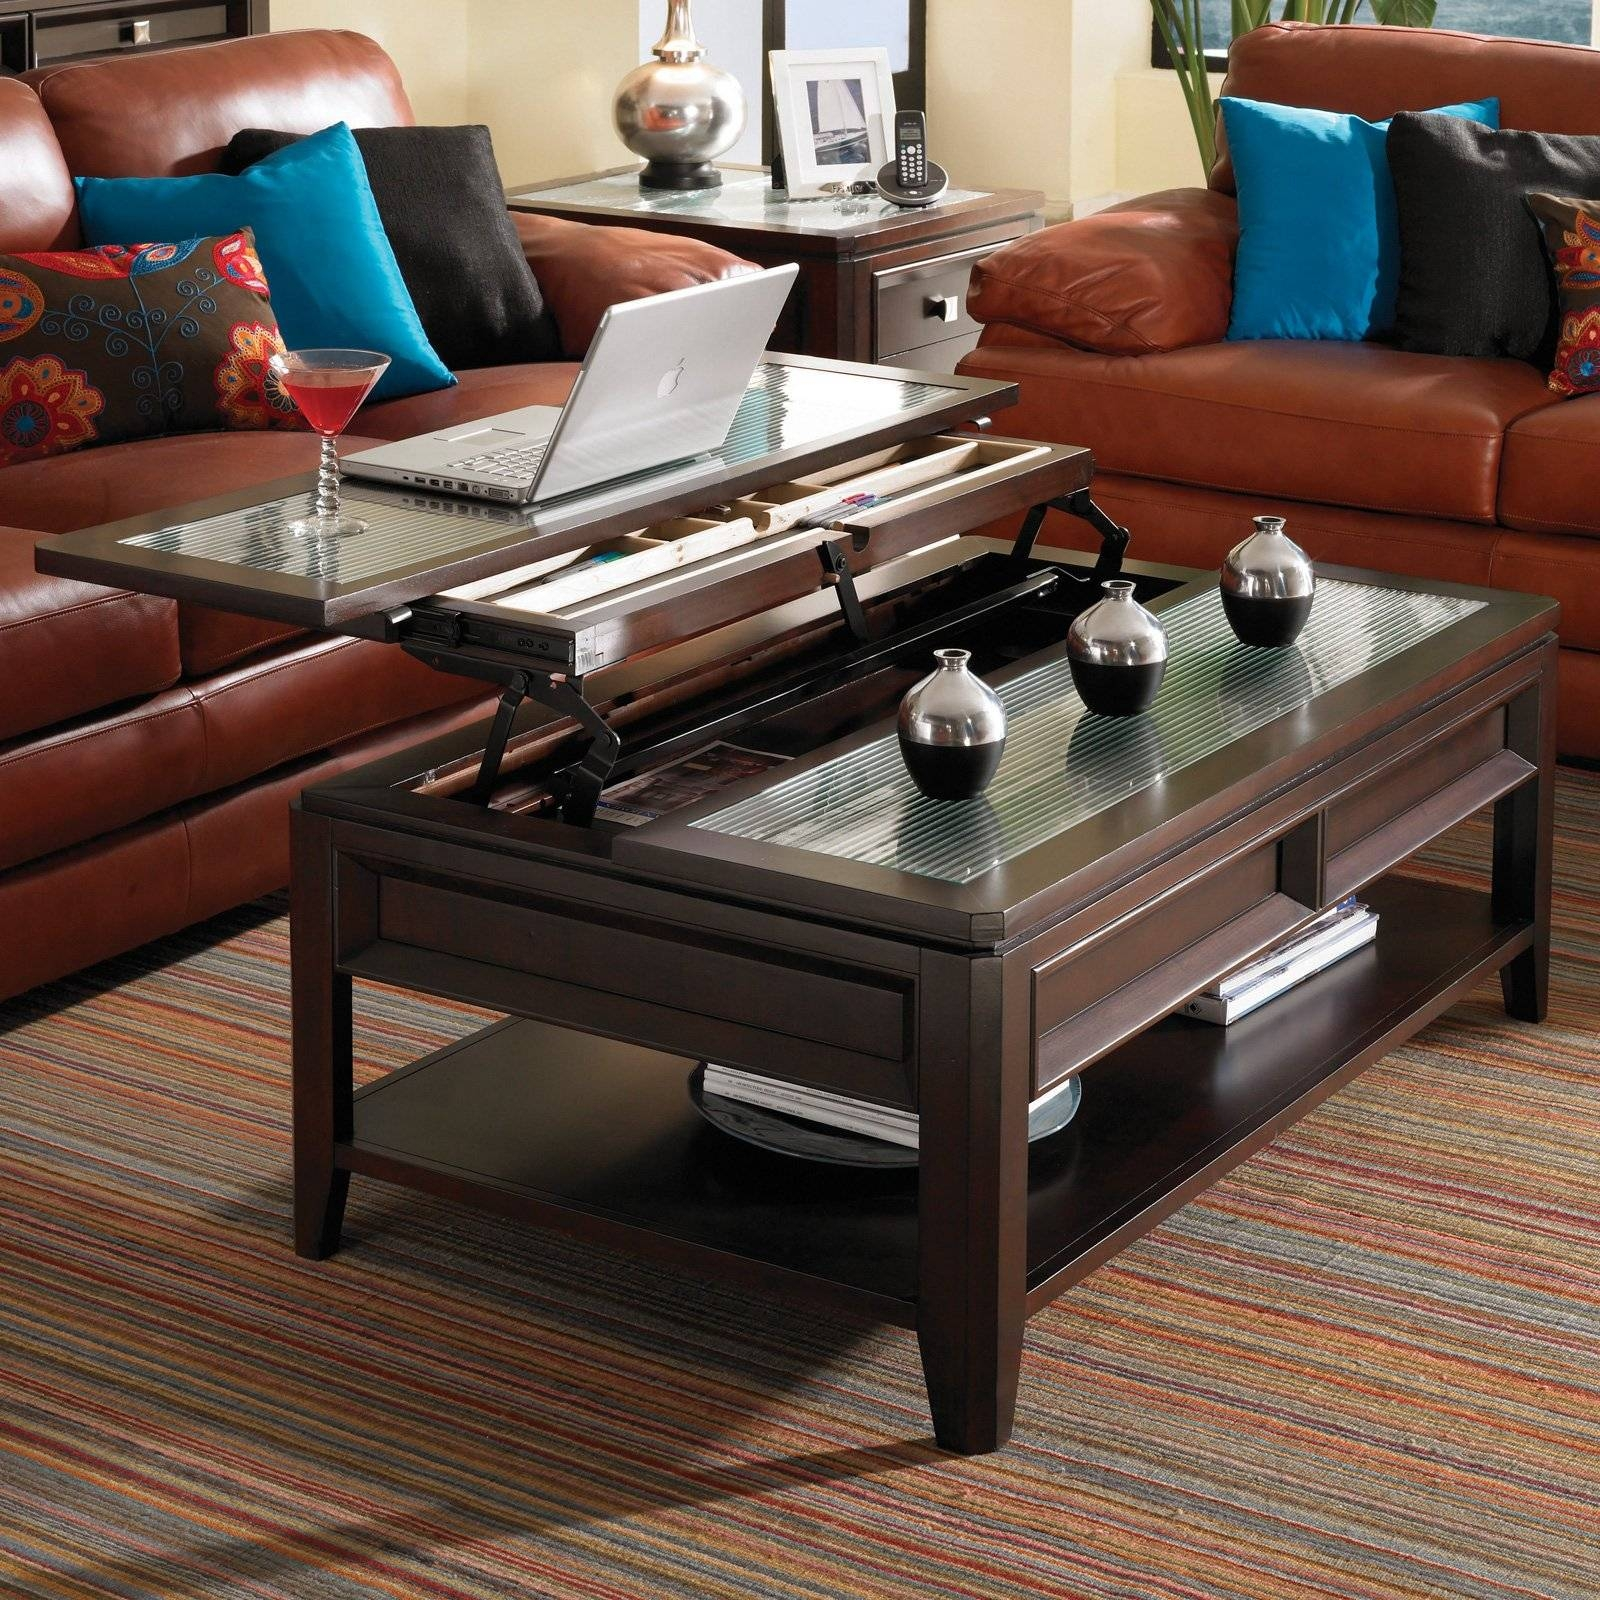 30 Inspirations of Hinged Top Coffee Tables